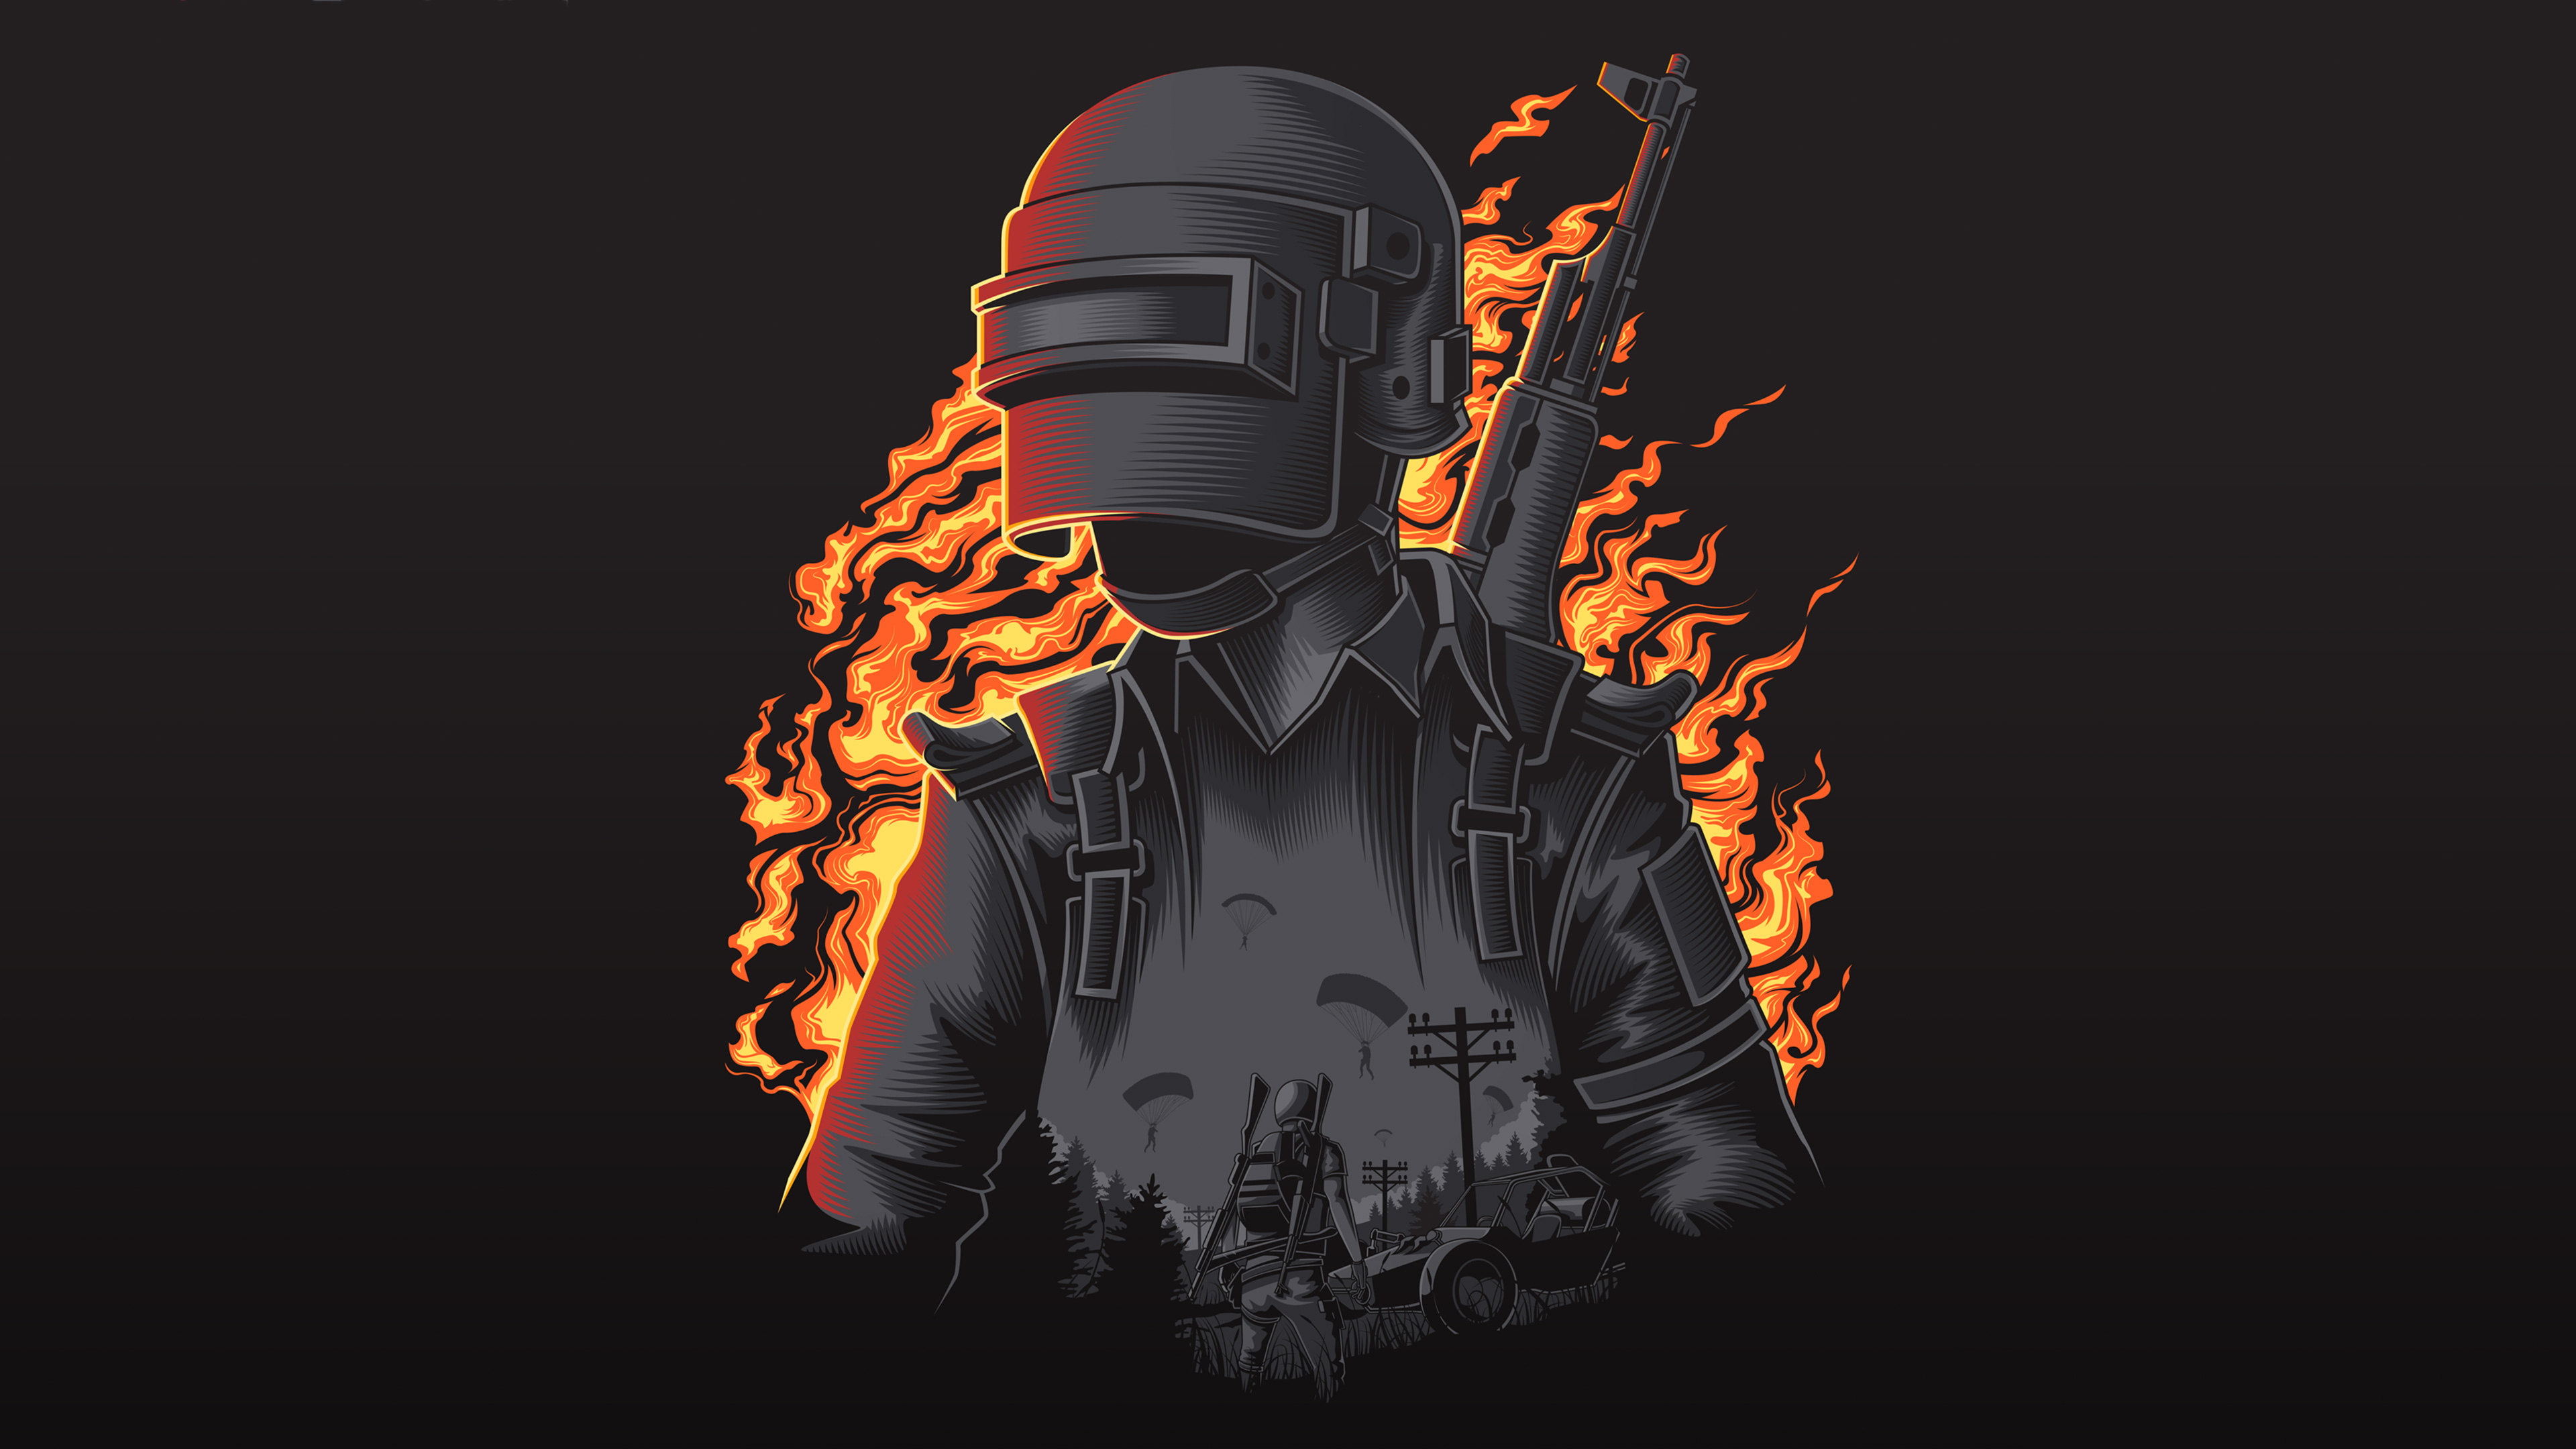 Pubg Wallpapers 4k Download: Pubg Illustration 4k, HD Games, 4k Wallpapers, Images